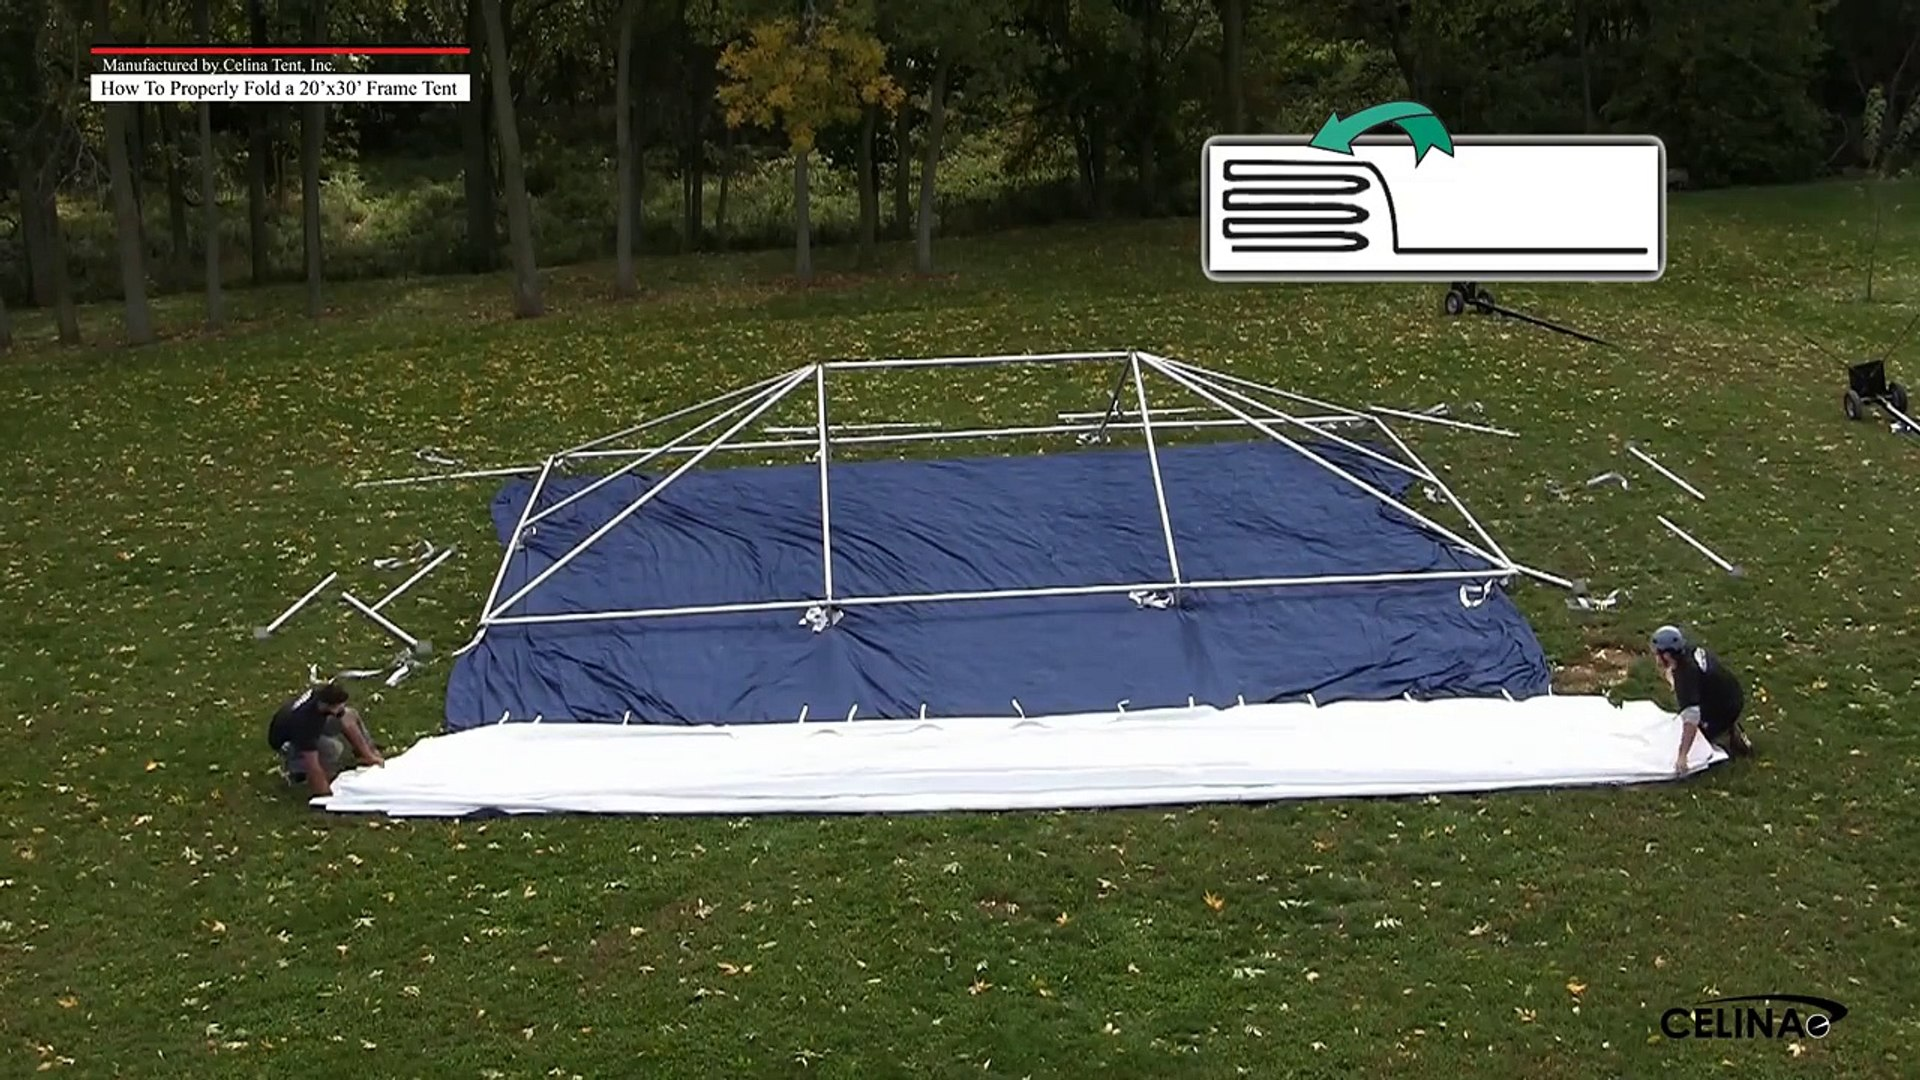 Folding & Rolling a 20' x 30' Frame Tent Top